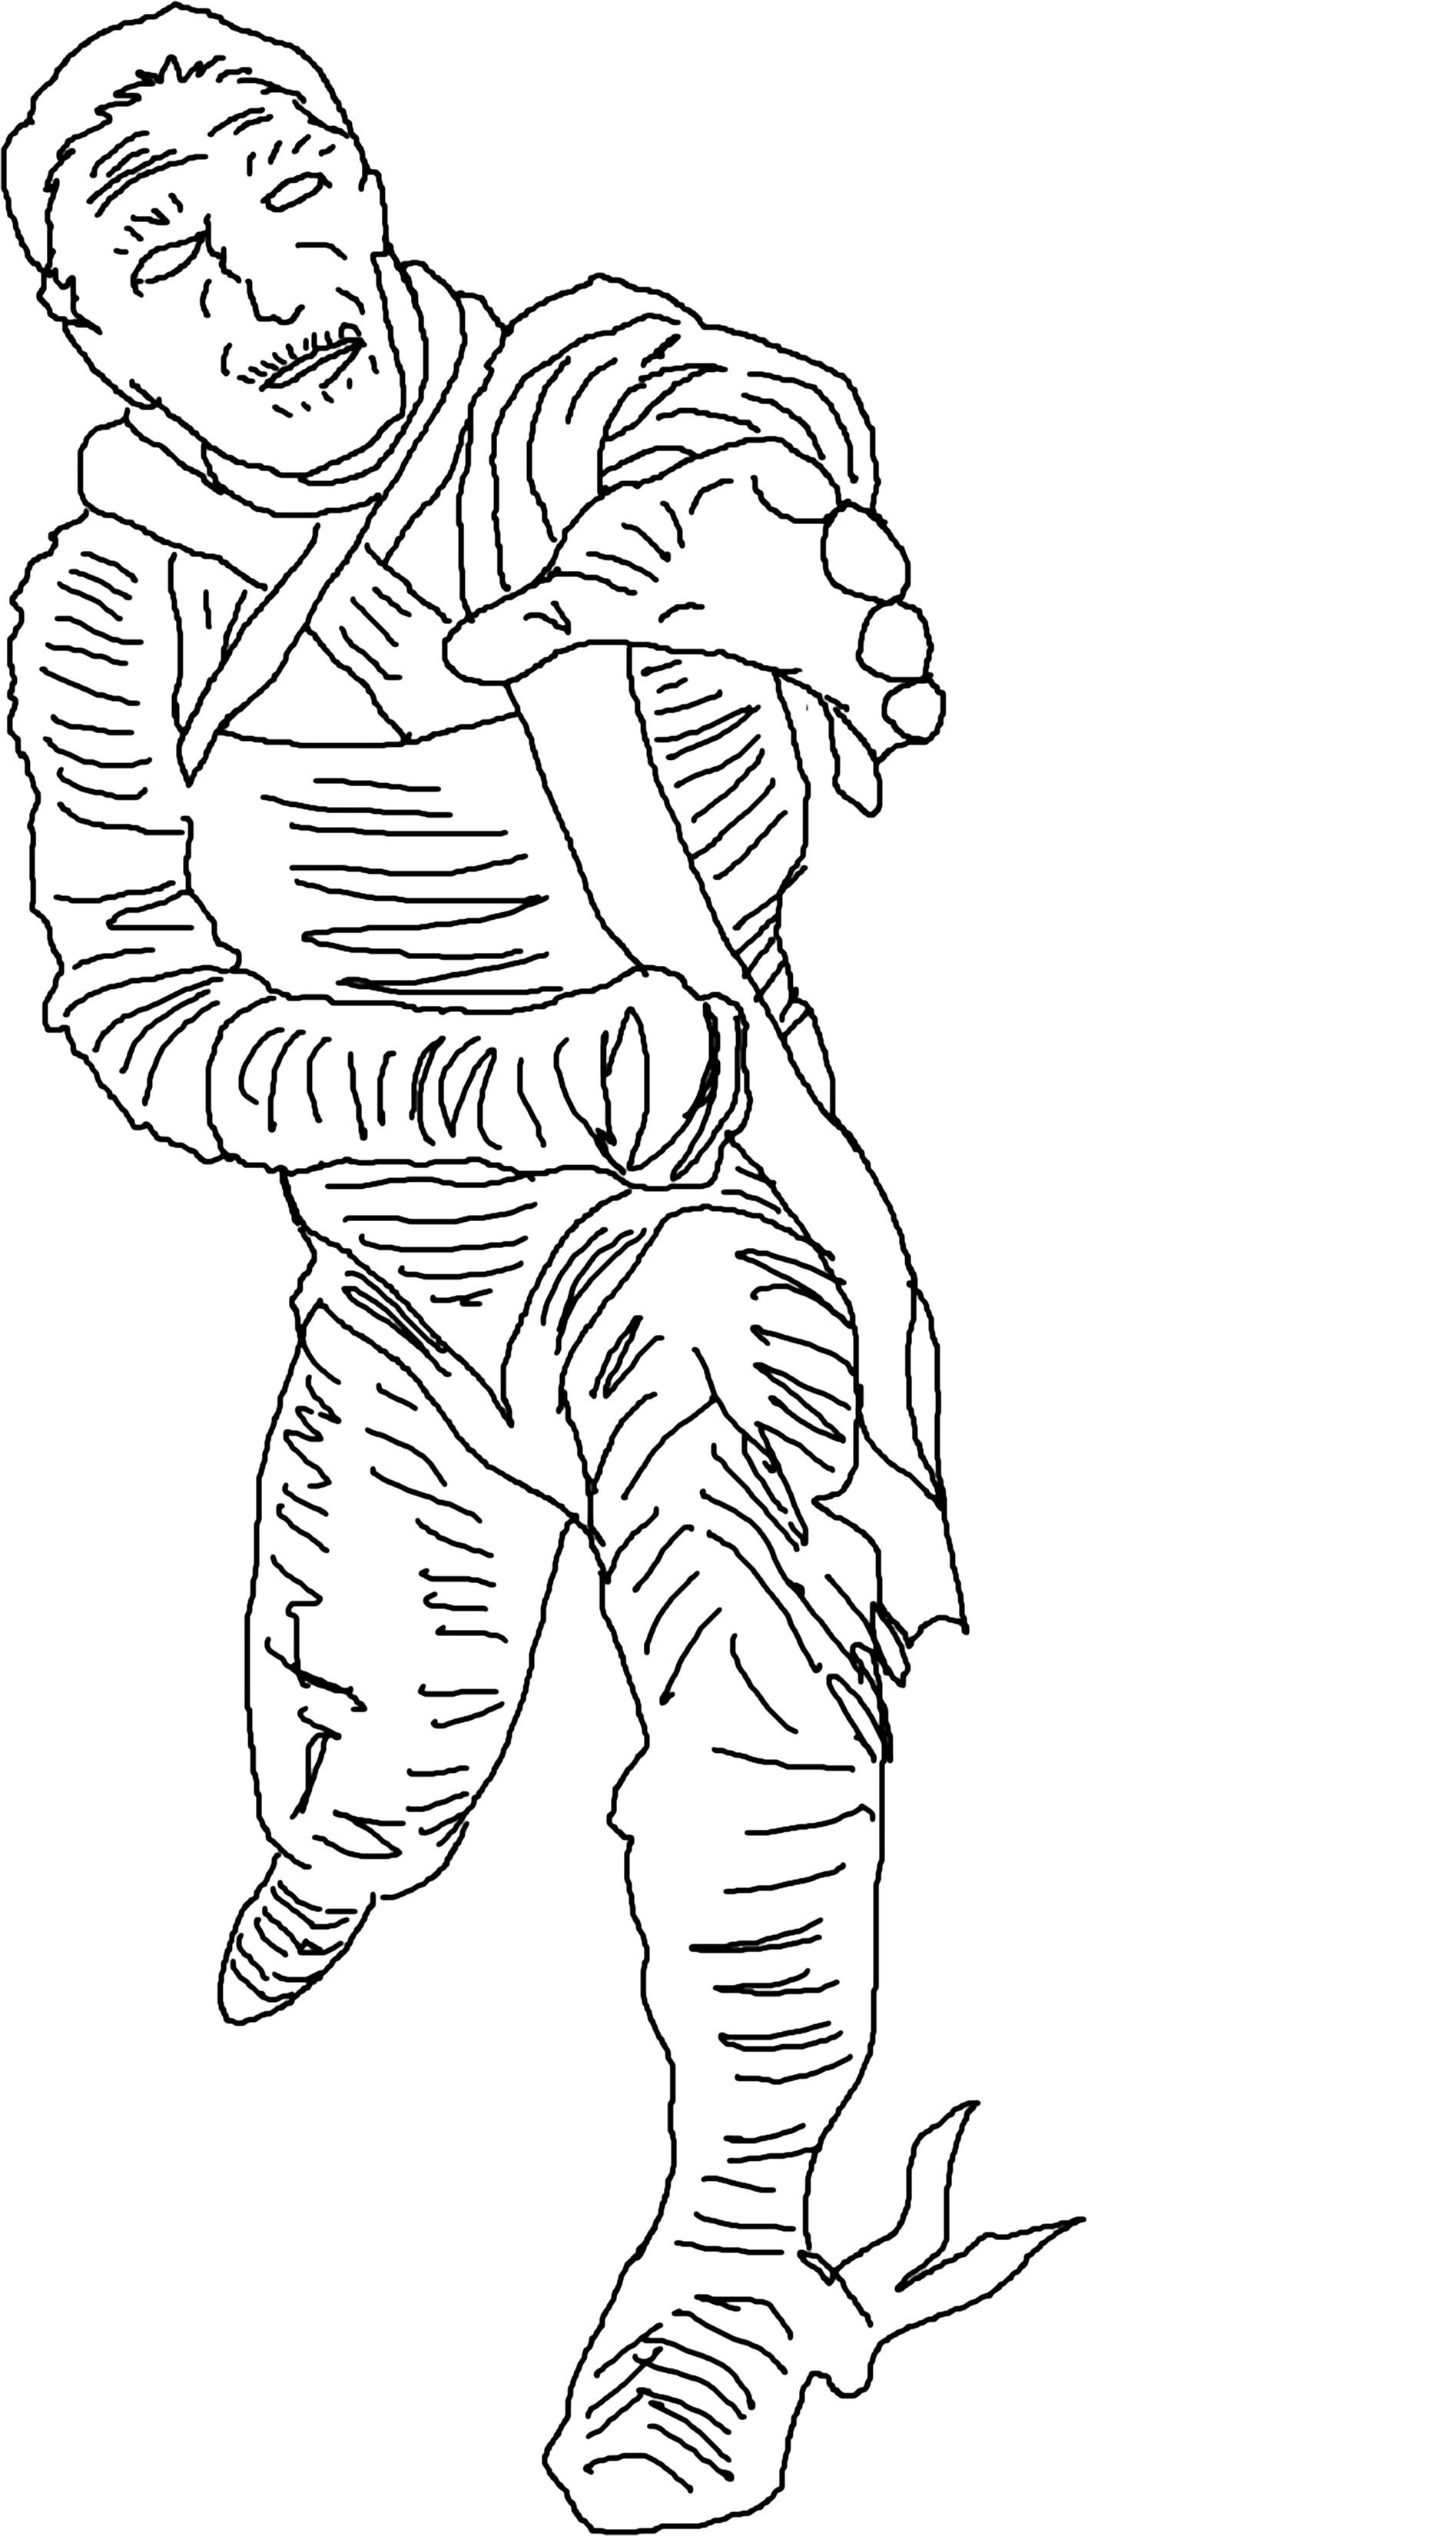 coloring sheet things to color free printable mummy coloring pages for kids to sheet coloring things color